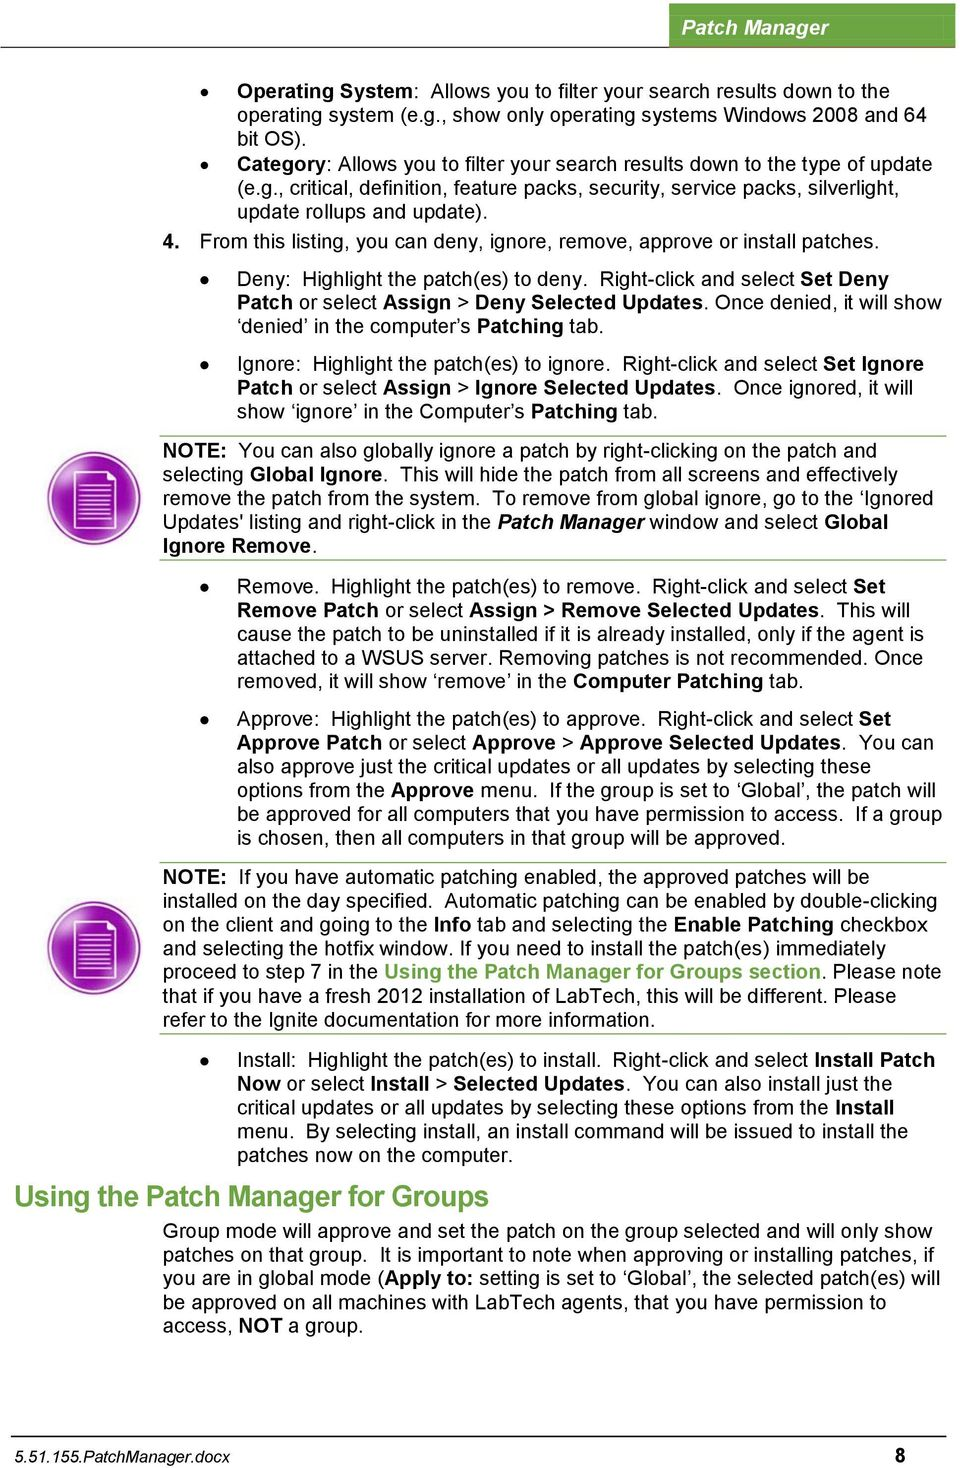 Patch Manager  Overview  LabTech - PDF